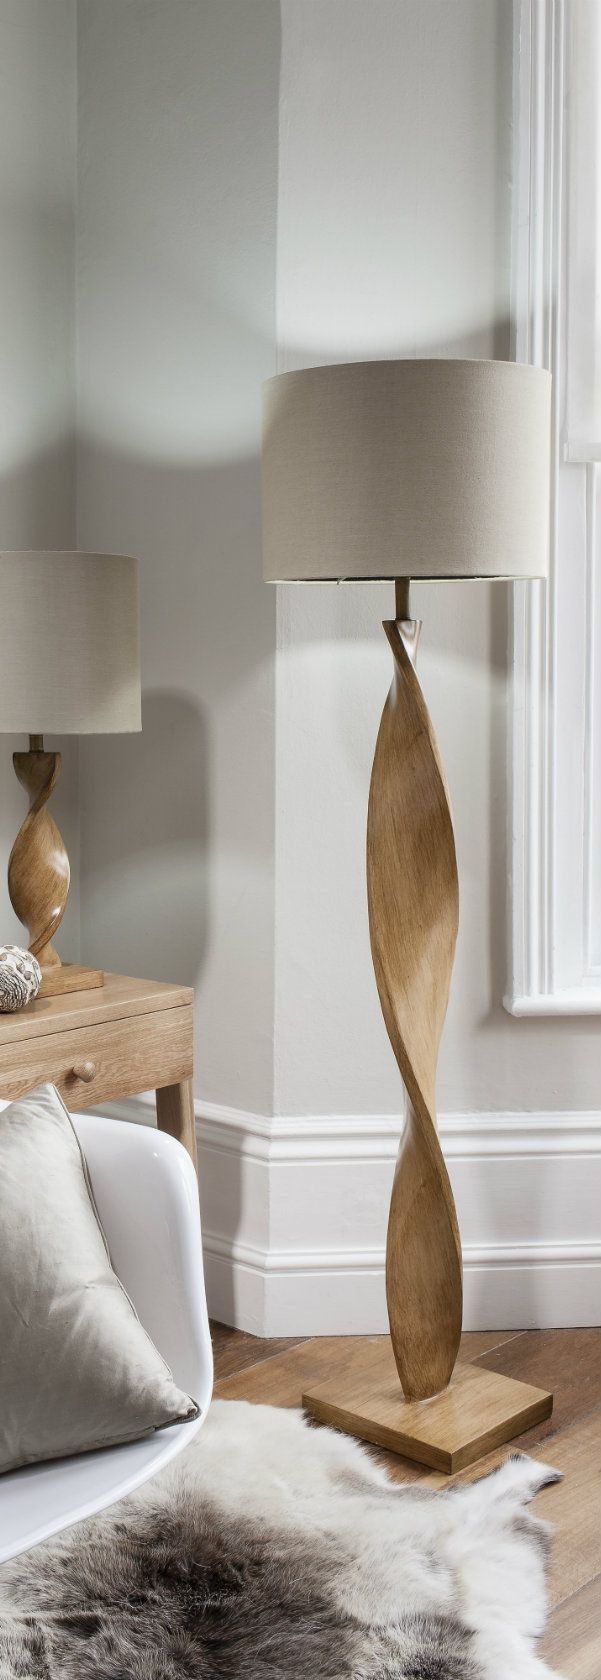 Tall lamps in living room - Argenta 160cm Twisting Wood Floor Lamp Ideas For Living Roomliving